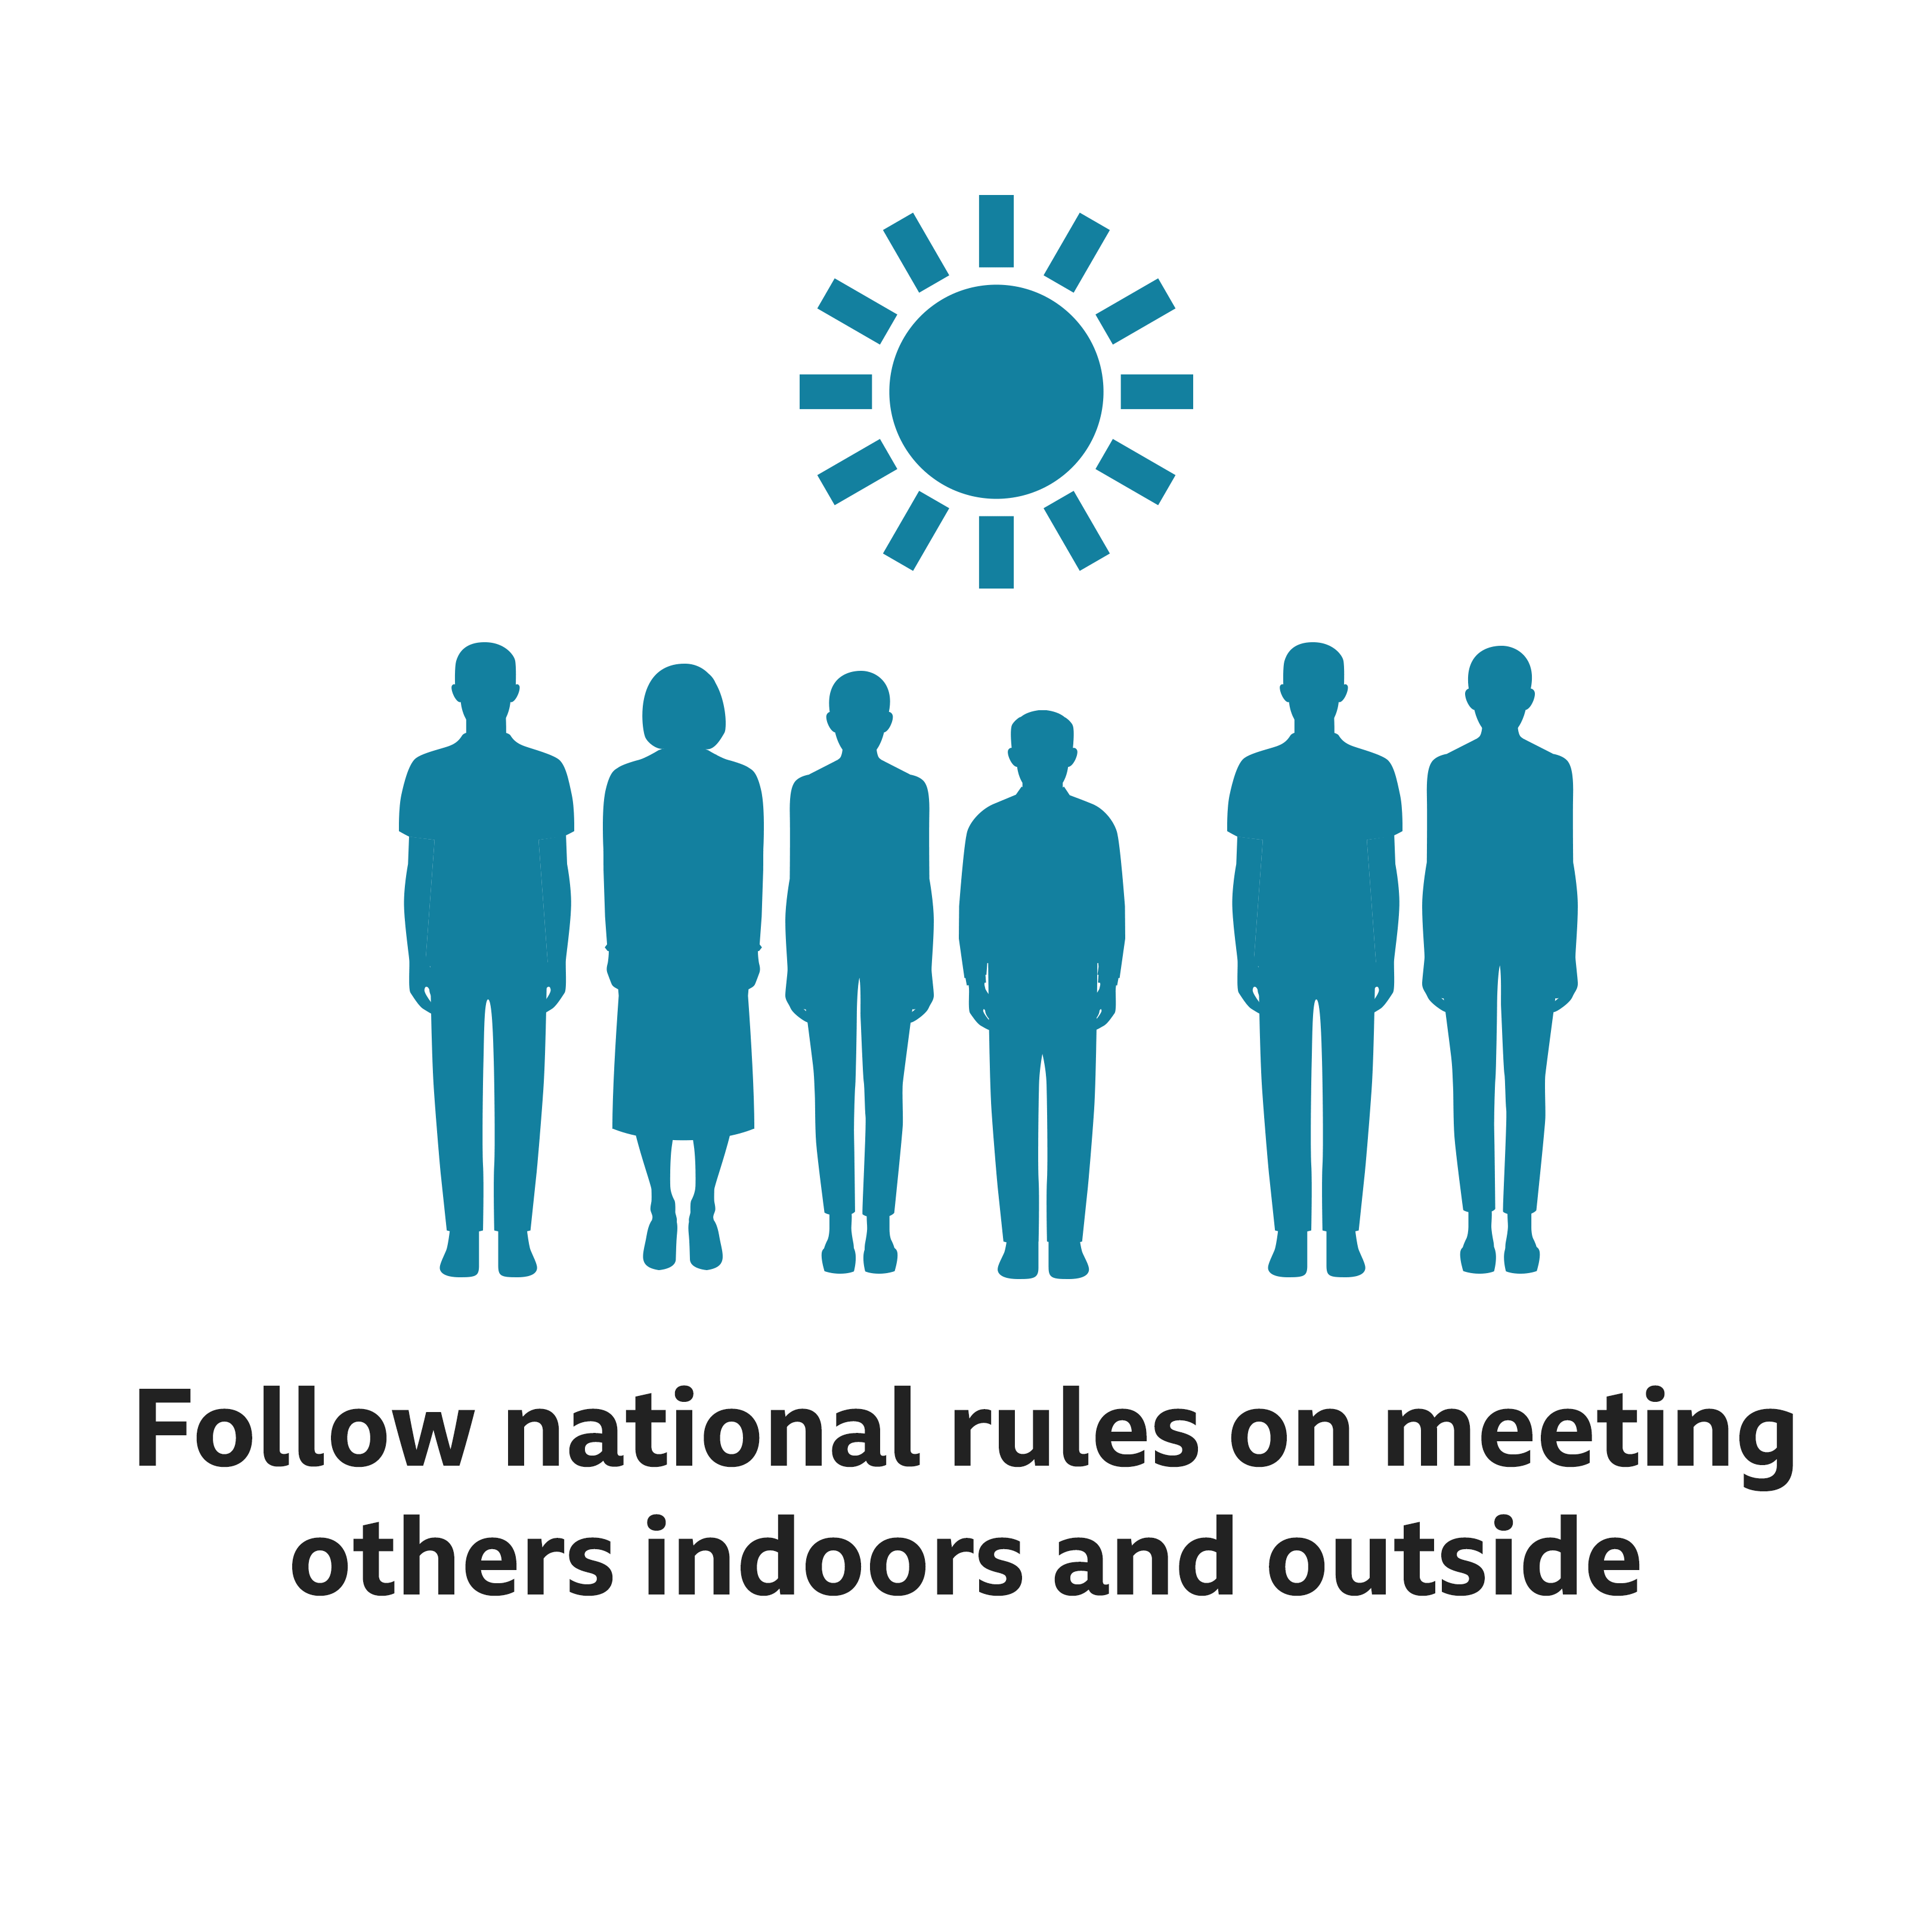 Follow rules about meeting people indoors and outdoors